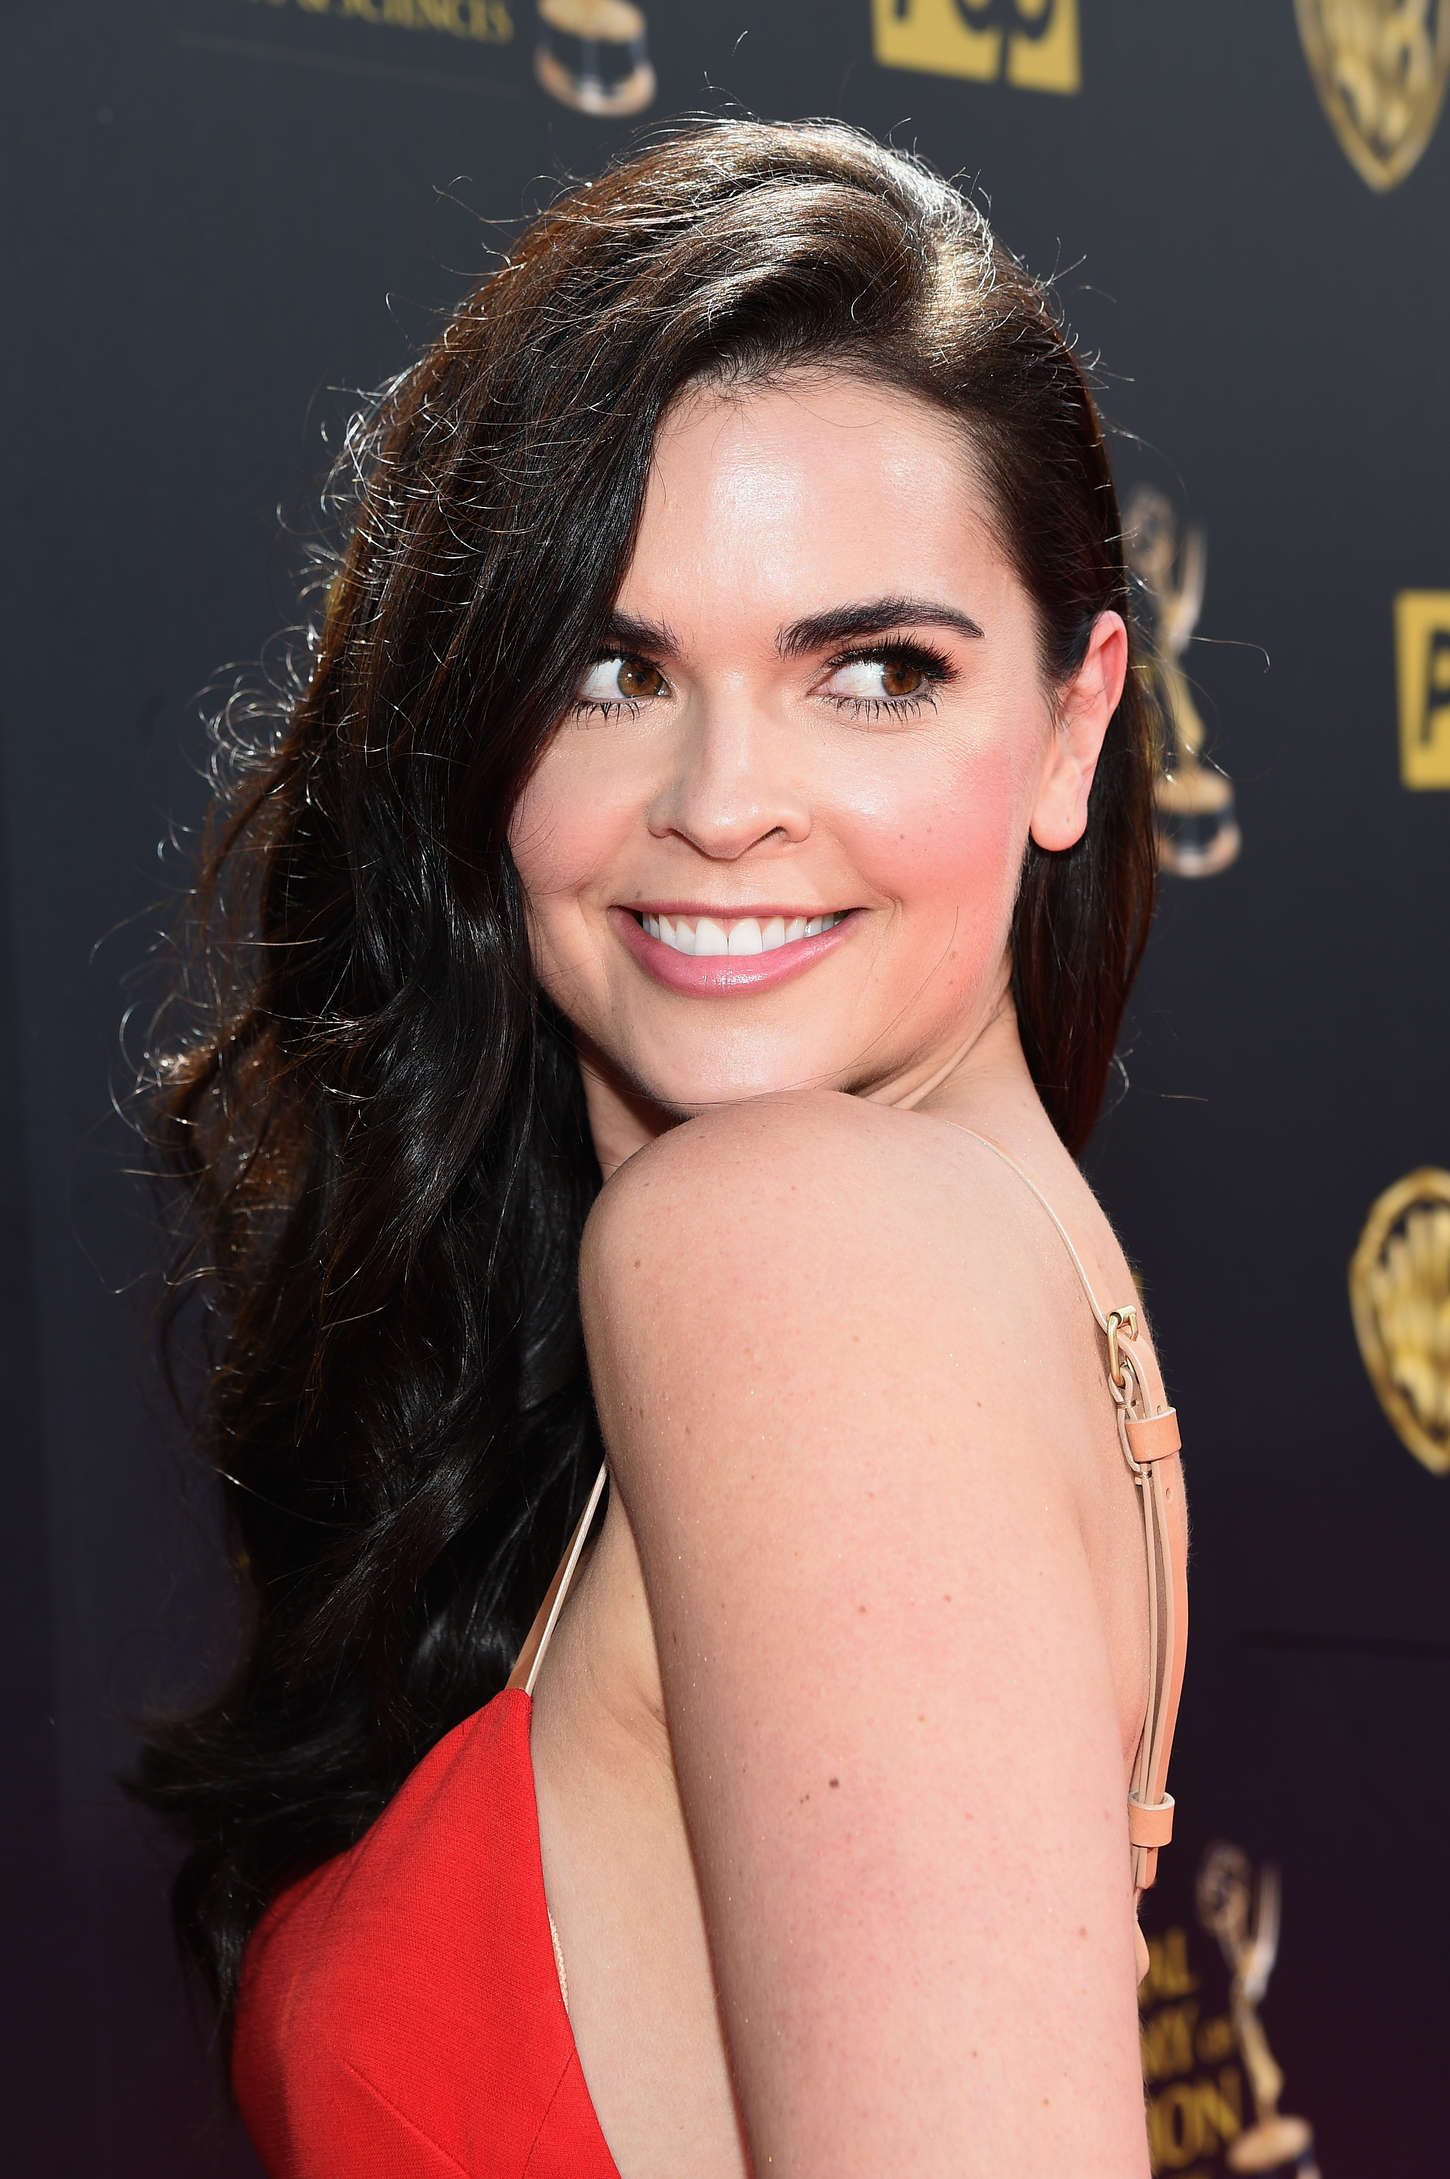 Katie Lee Annual Daytime Emmy Awards in Burbank